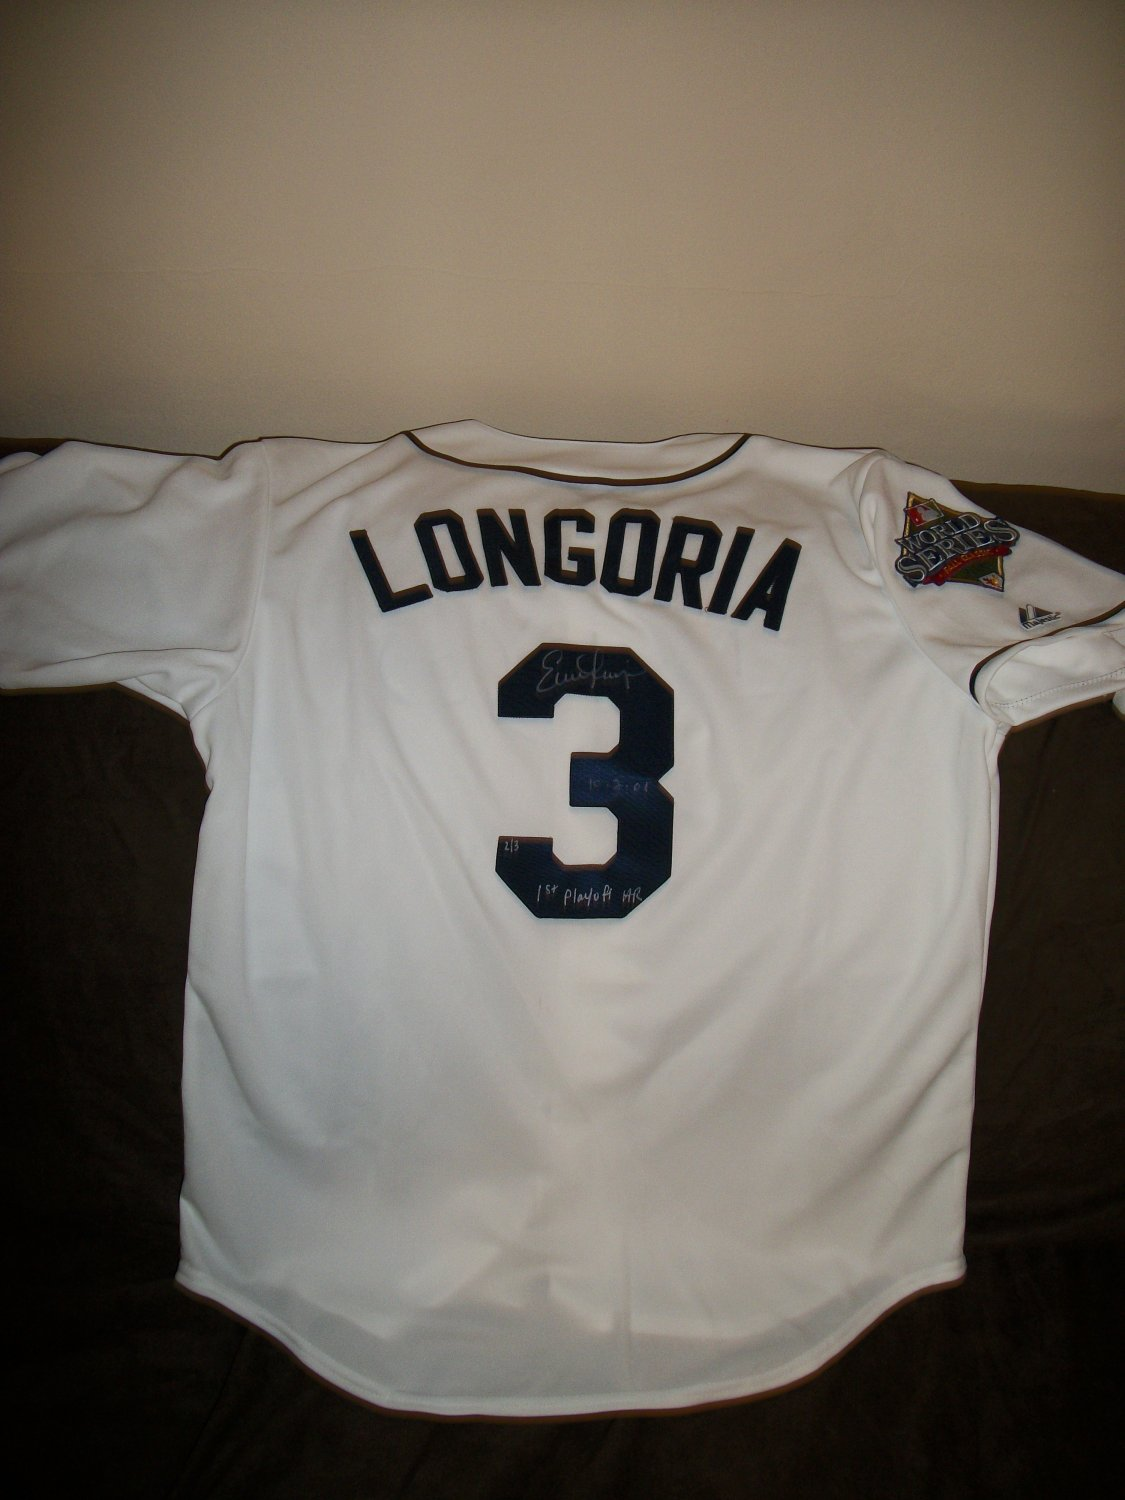 Evan Longoria Authentic SIGNED 2008 World Series Limited Edition Jersey